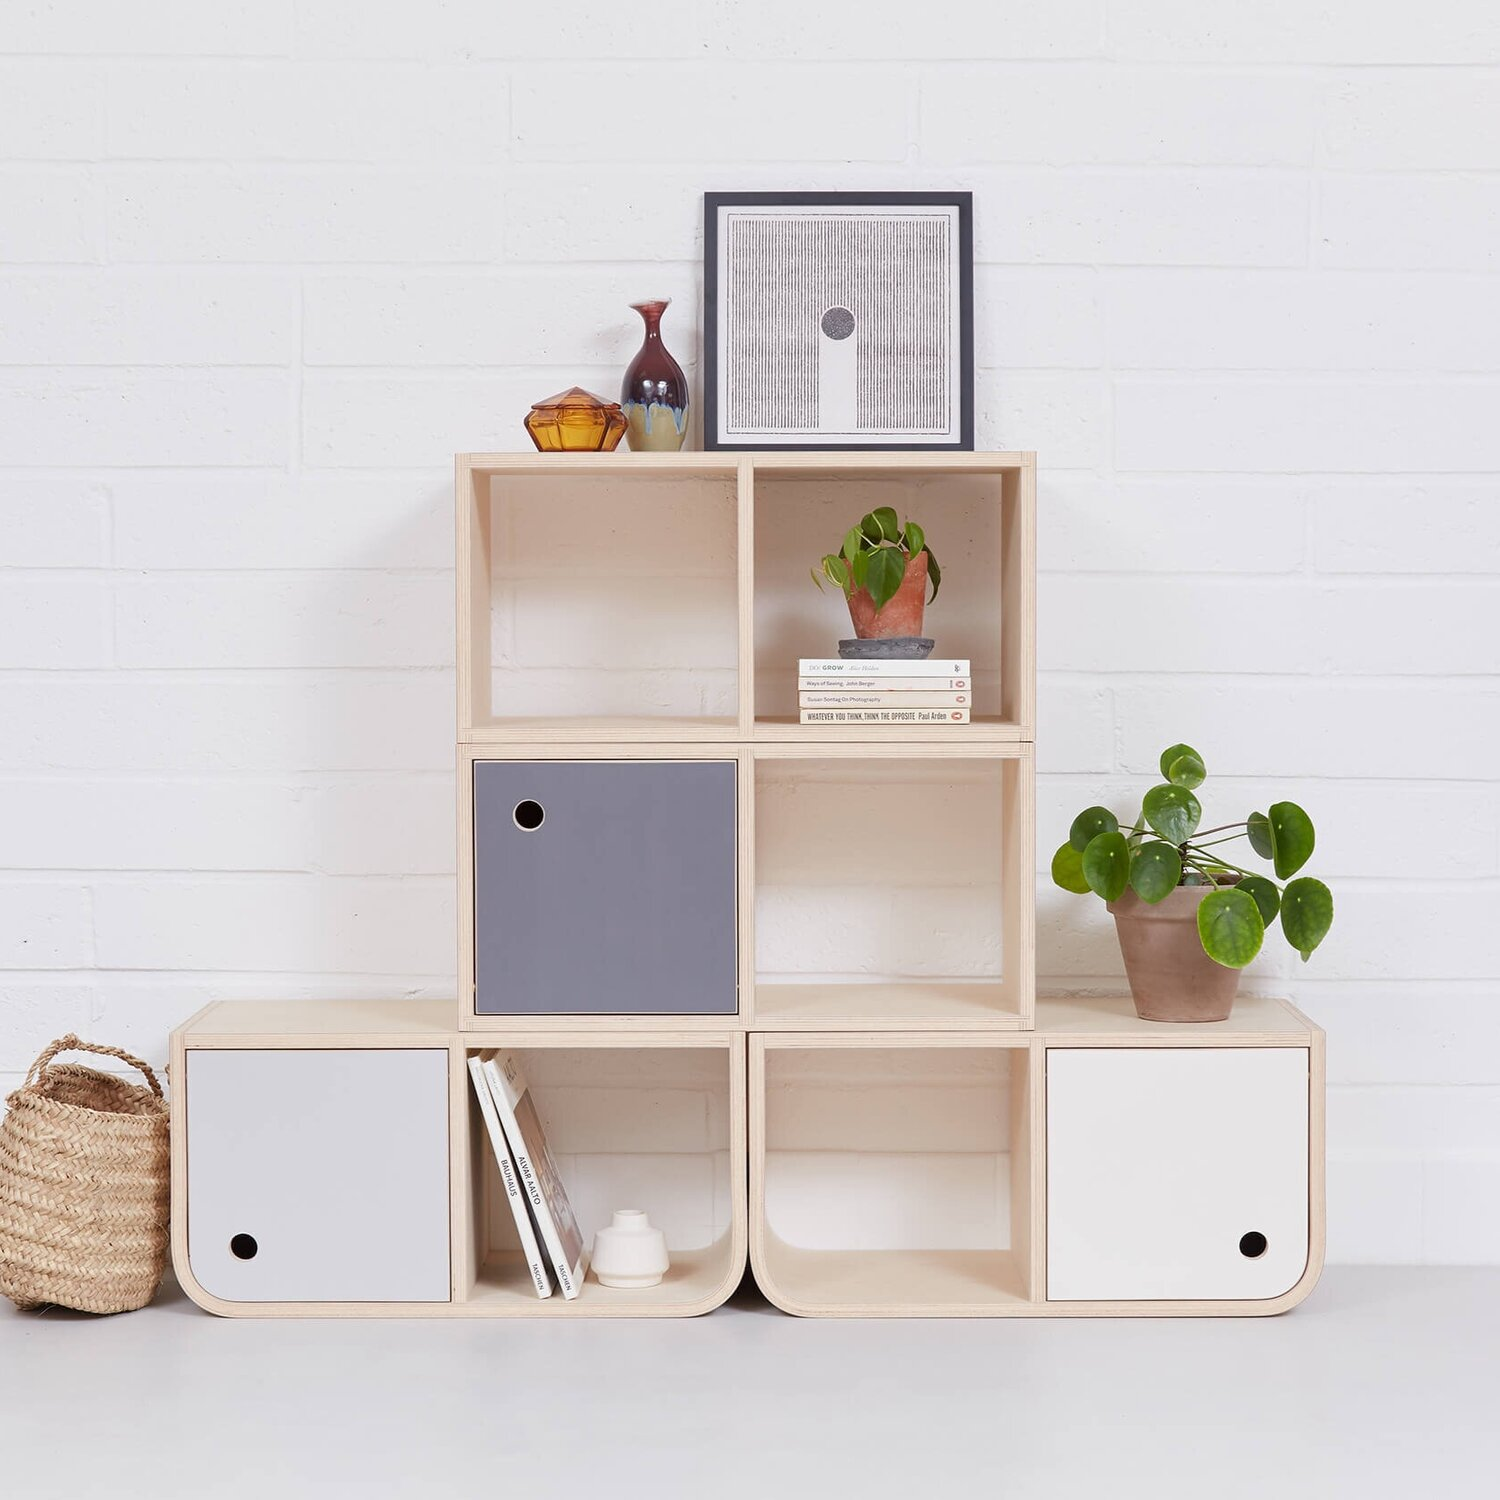 Lozi bespoke plywood furniture modular storage